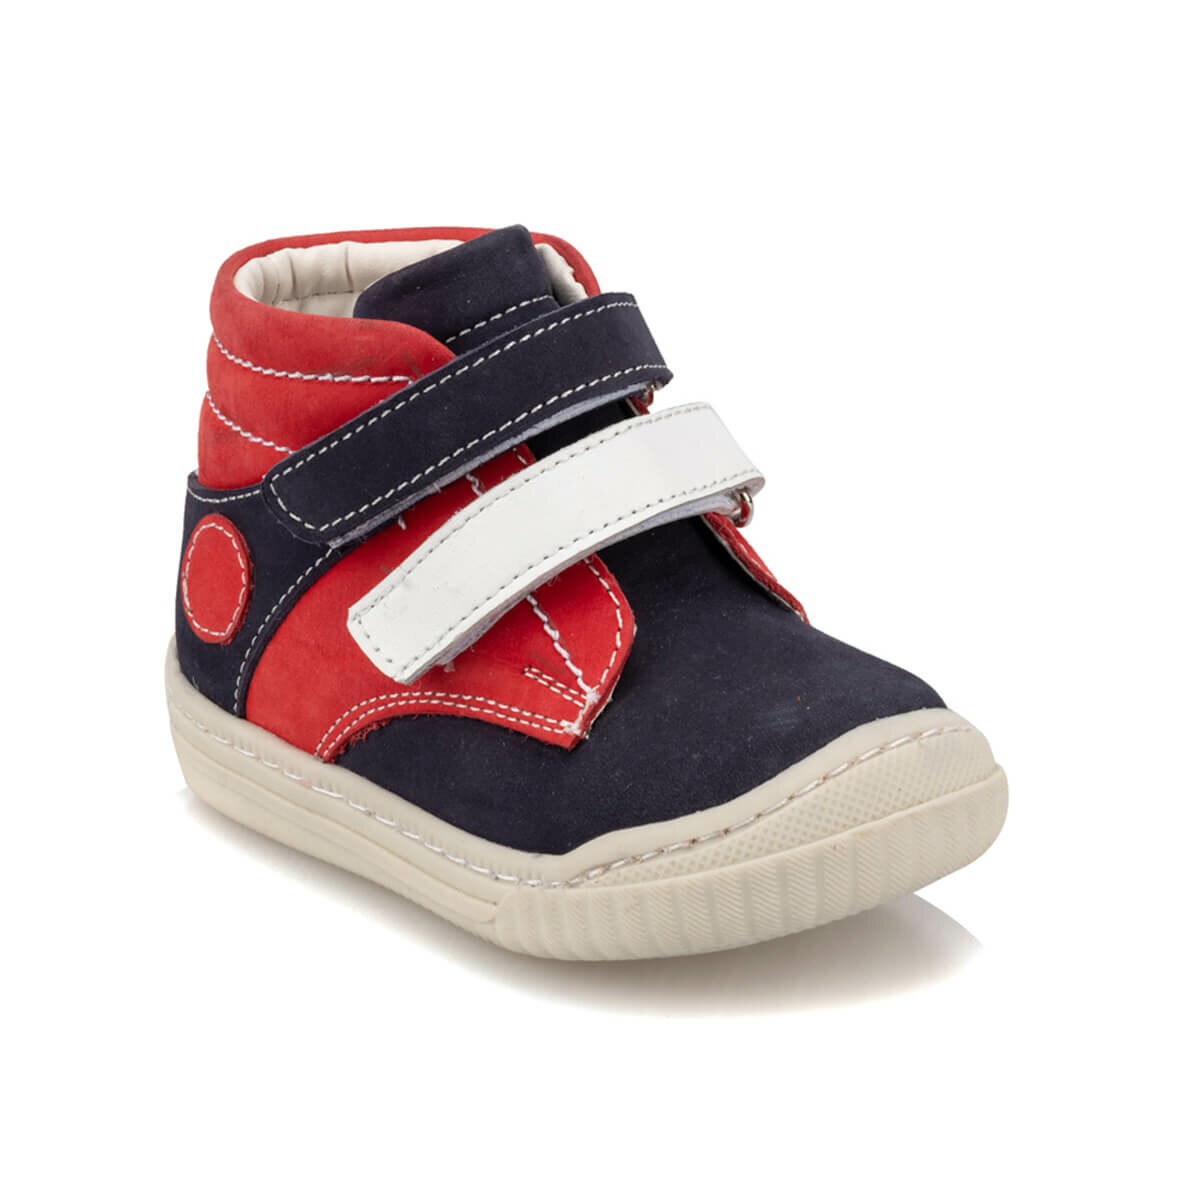 FLO 92.511711.I Navy Blue Male Child Boots Polaris